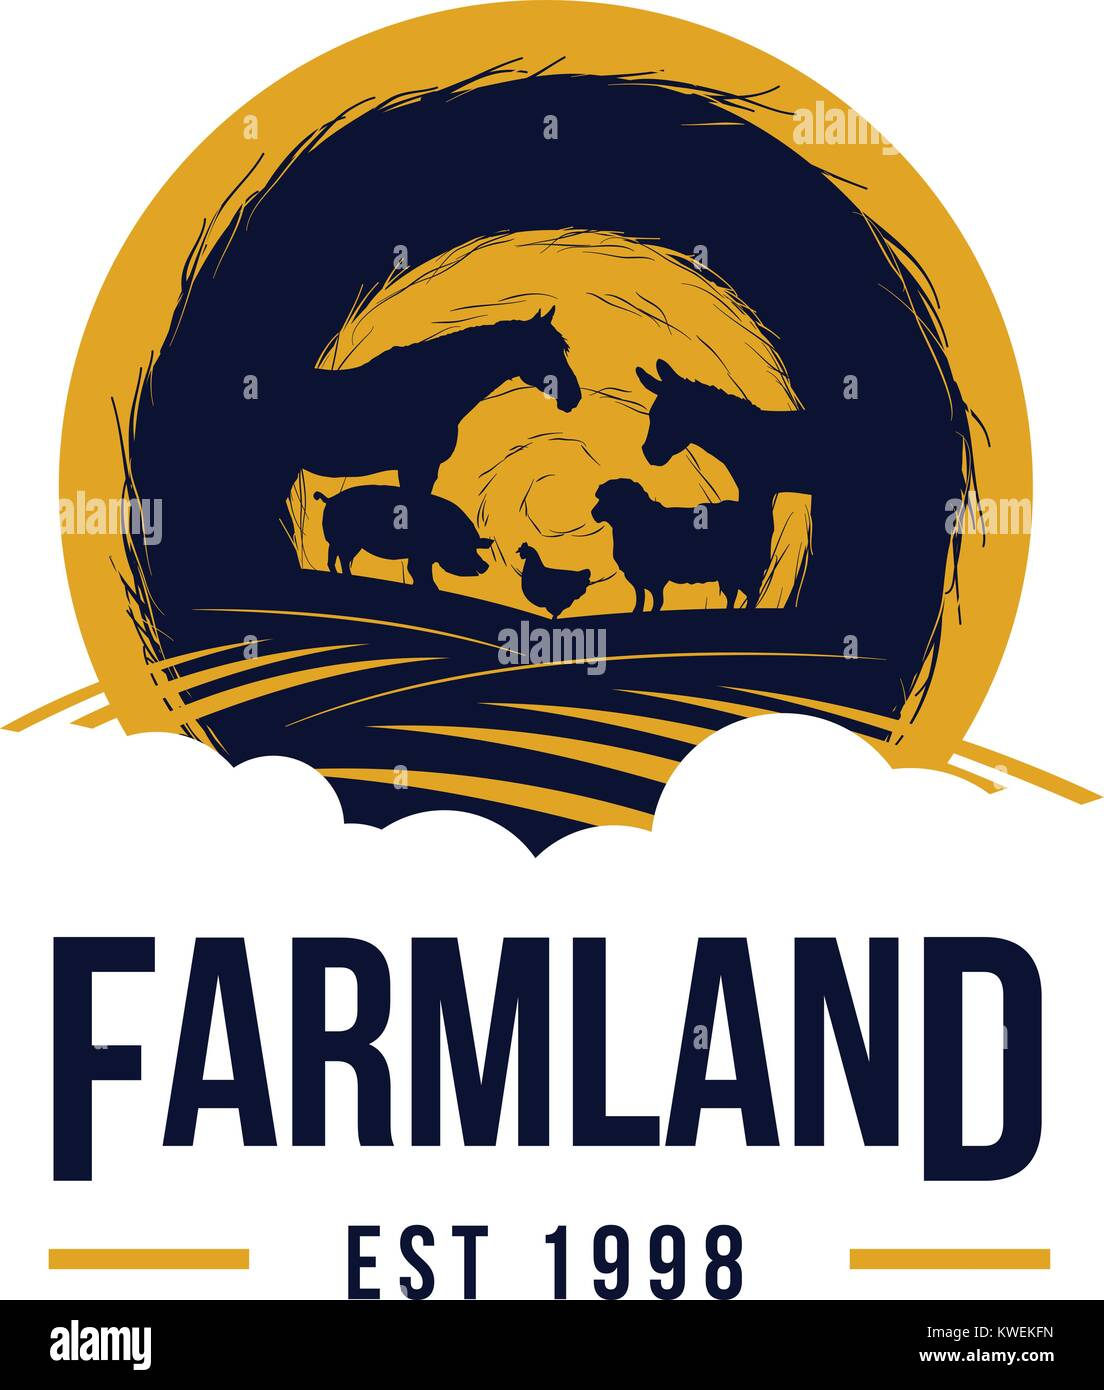 Livestock Farm Land Logo with silhouette of animals, horse, pig, donkey, sheep, chicken - Stock Image